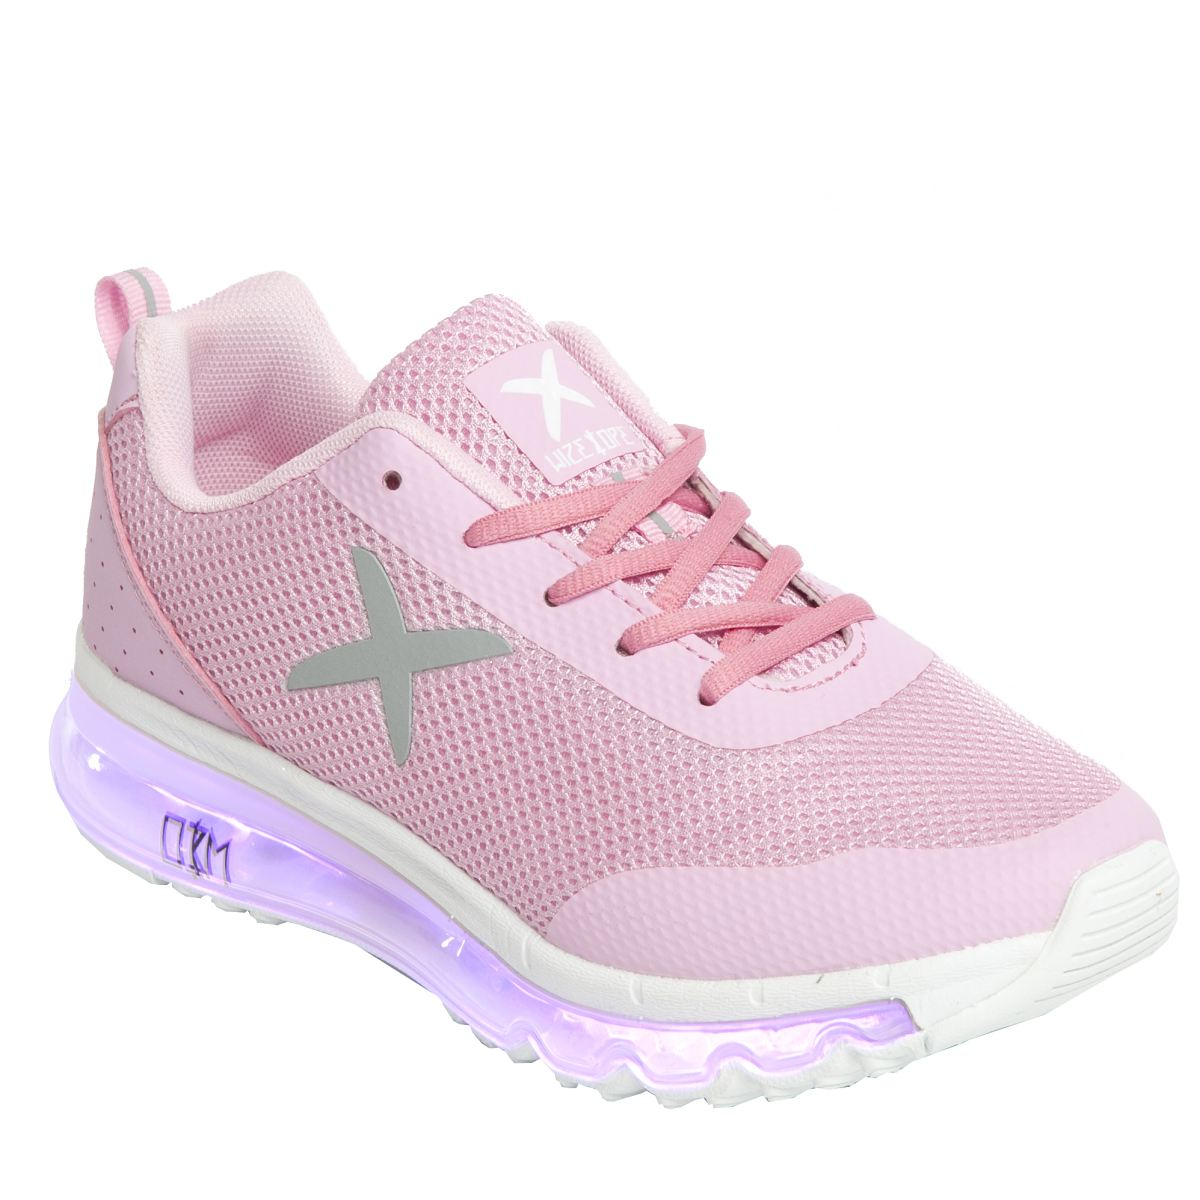 wize & ope Wize & Ope Pink Xrun Trainers